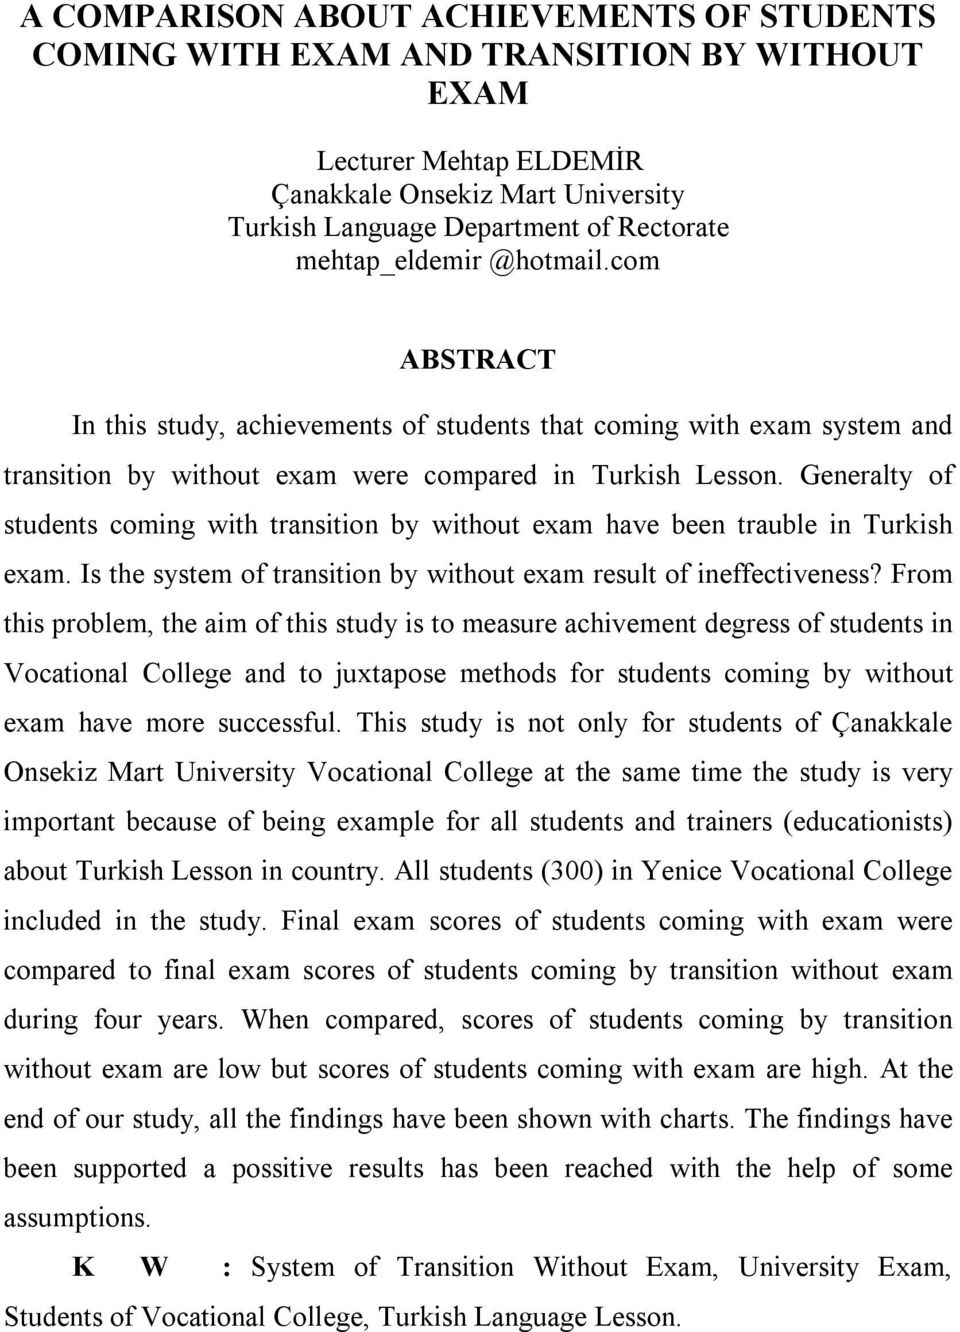 Generalty of students coming with transition by without exam have been trauble in Turkish exam. Is the system of transition by without exam result of ineffectiveness?